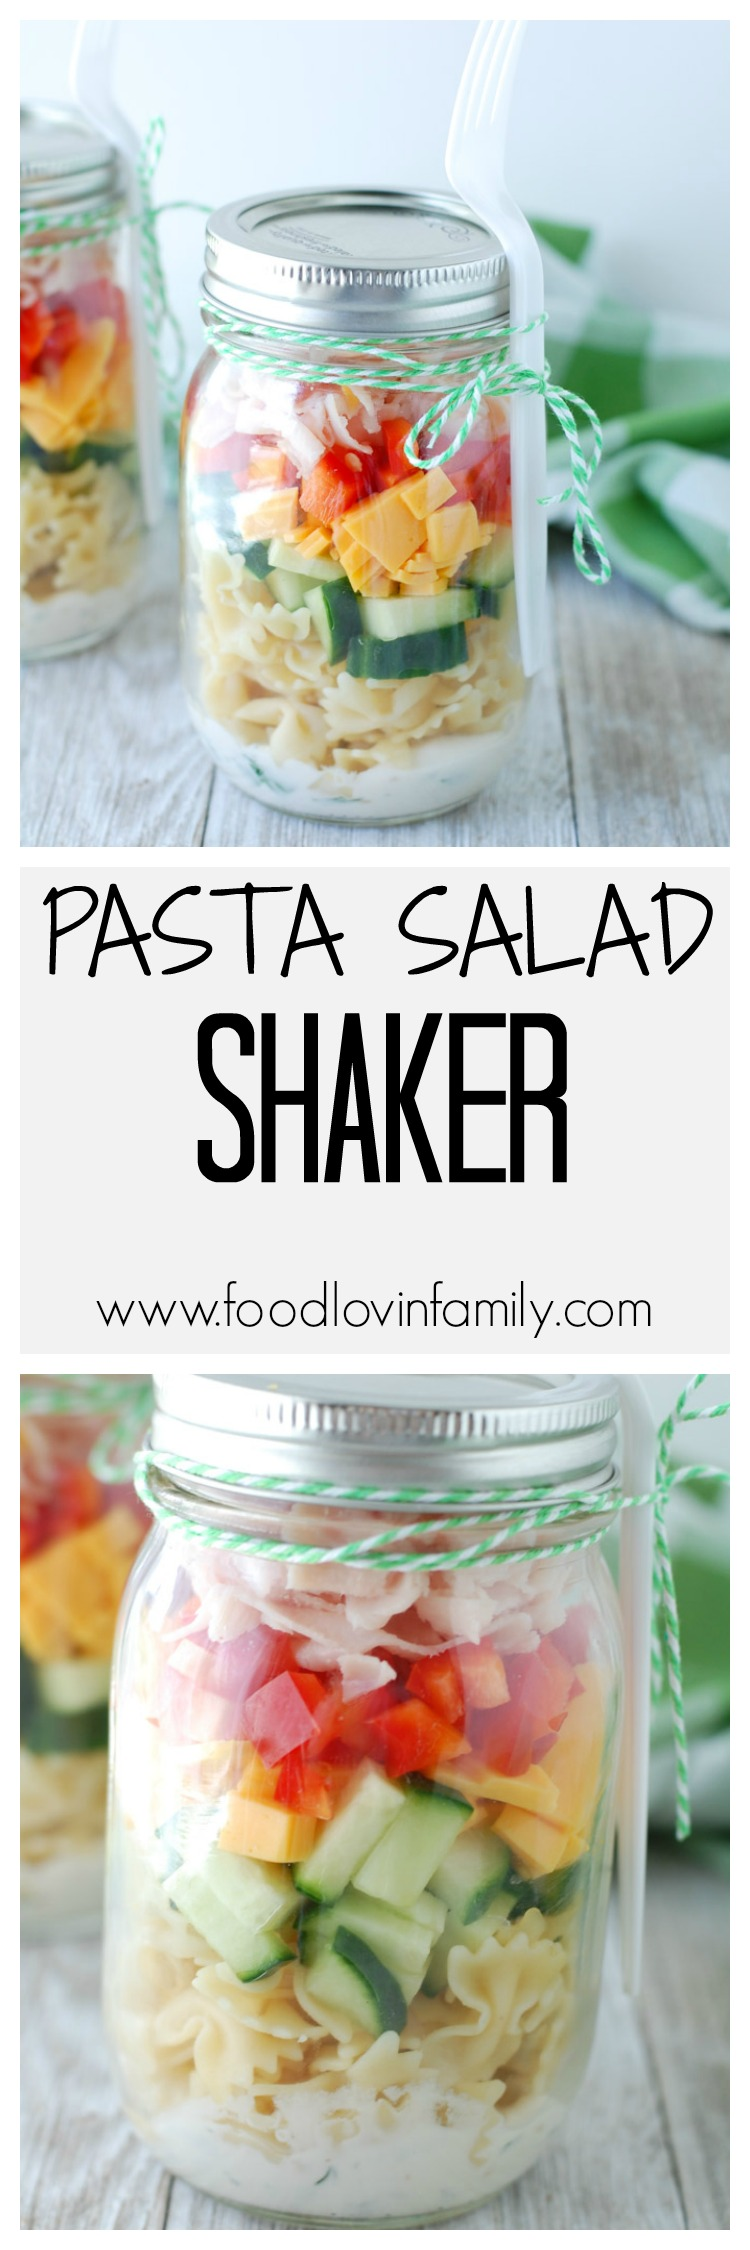 Forget sandwiches, these mason jar pasta salad shakers will shake up your lunch box routine. Filled with quality turkey and cheese, pasta, vegetables and a homemade ranch dressing these shakers are sure to please.